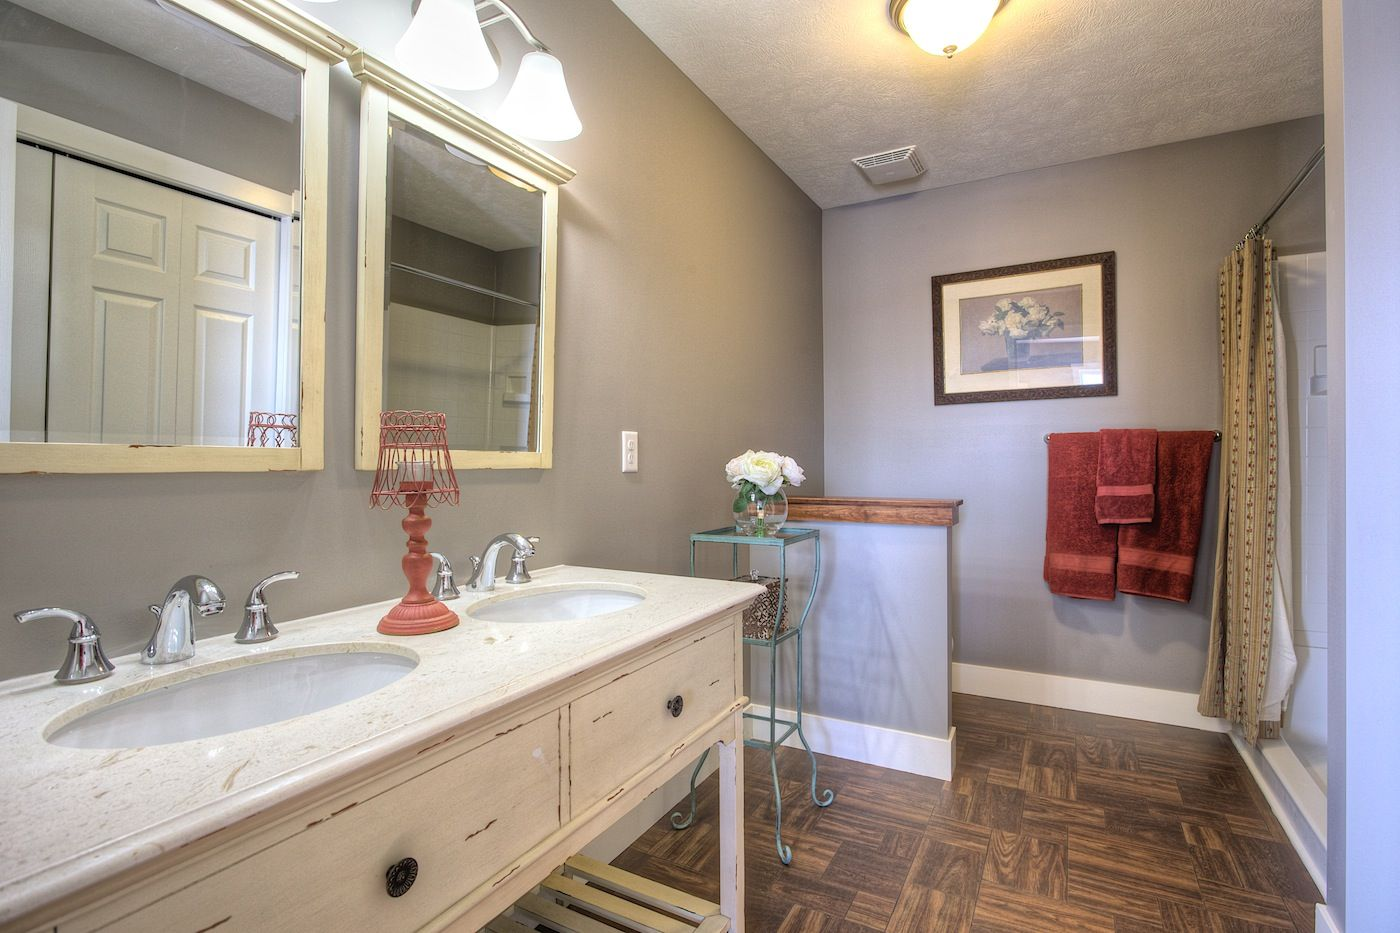 Bathroom featured in the Elements 1870 By Allen Edwin Homes in South Bend, IN